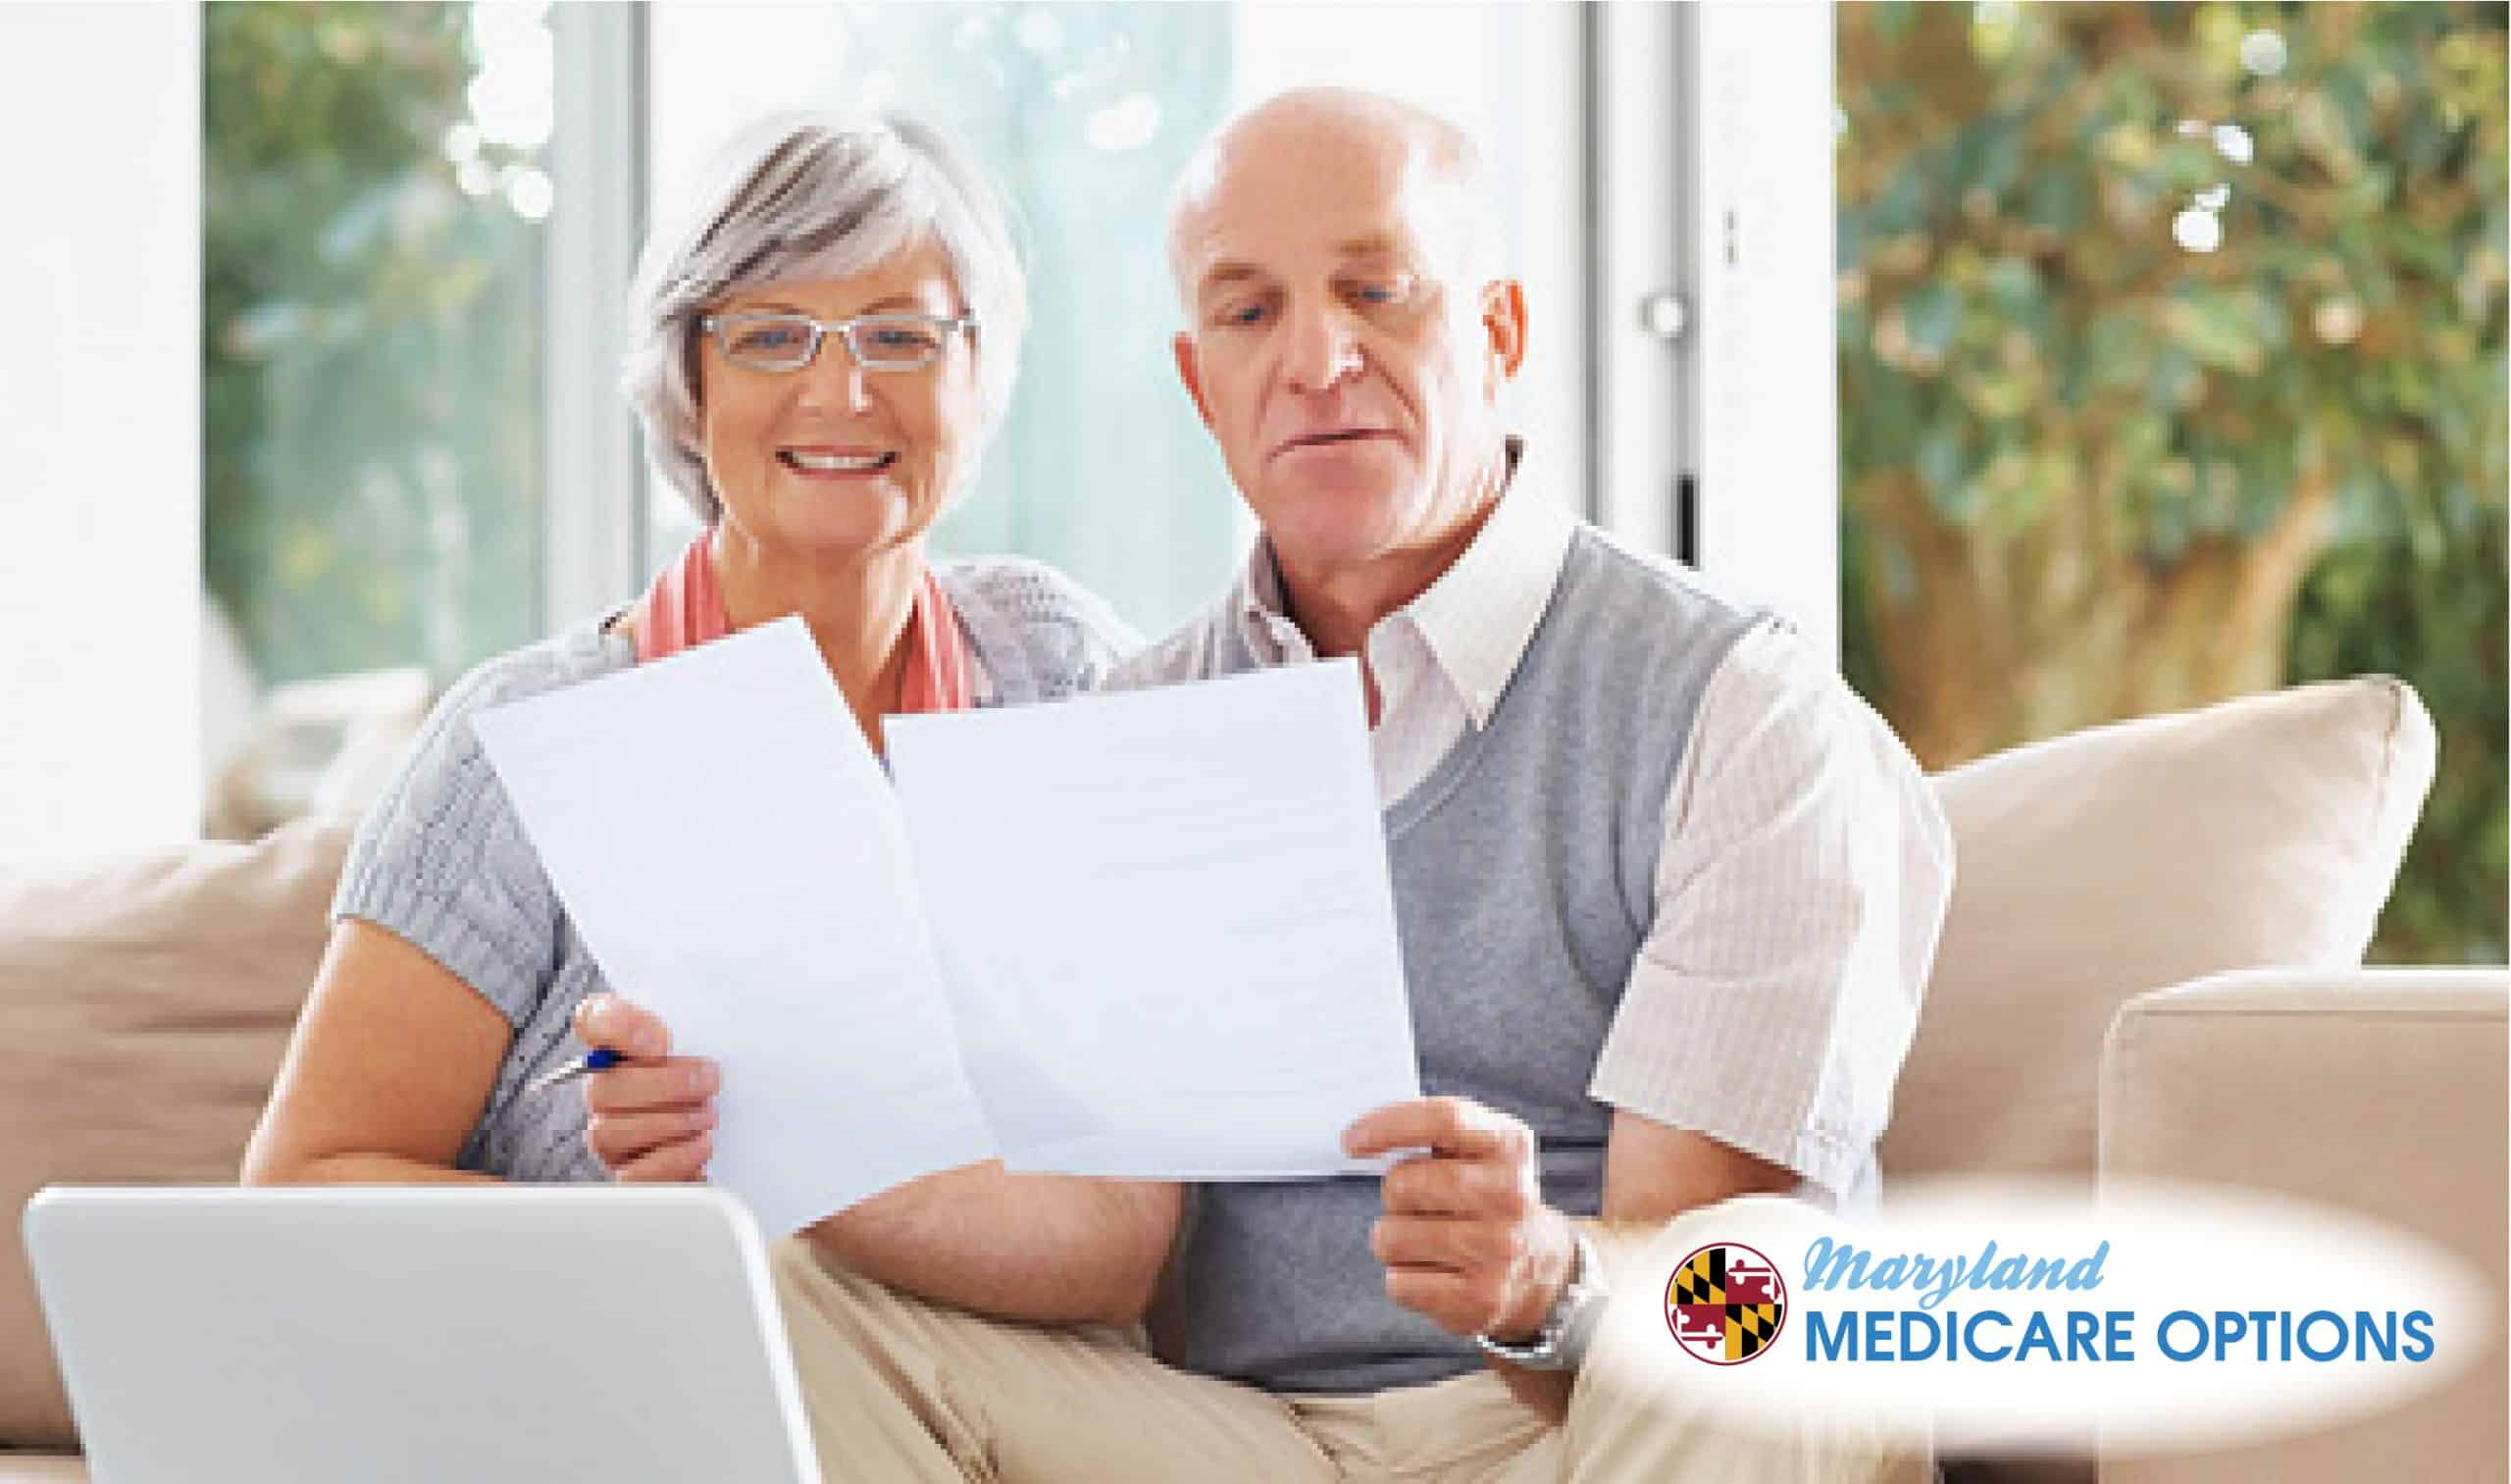 maryland medicare plans when turning 65